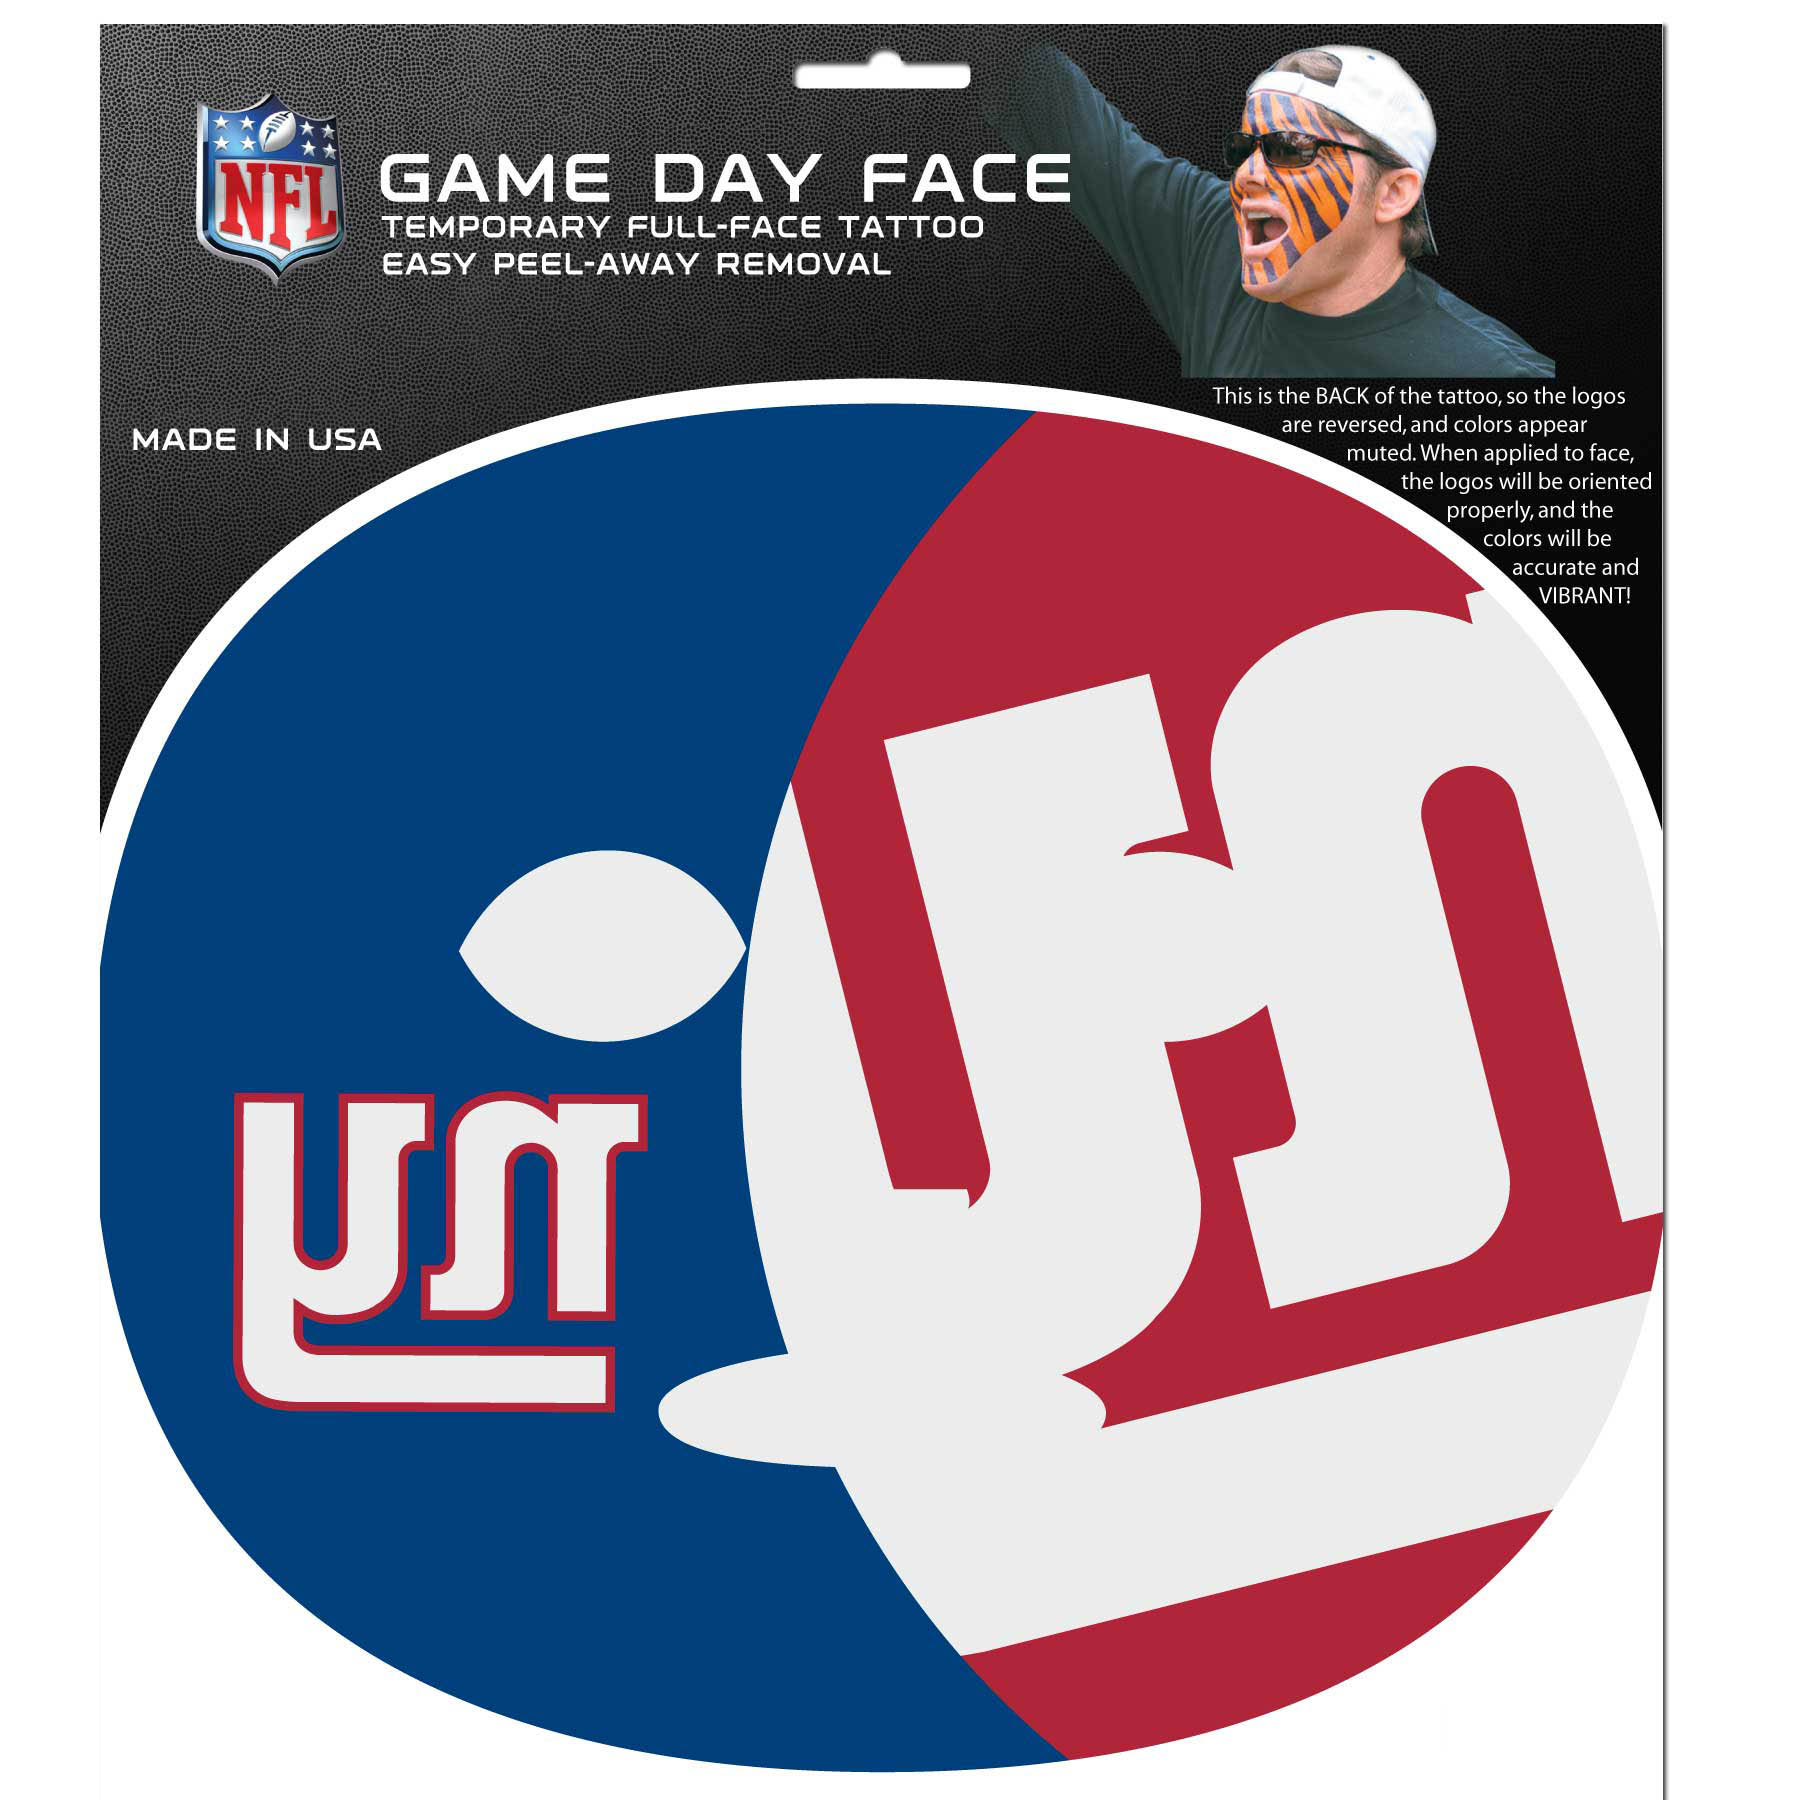 New York Giants Set of 4 Game Day Faces - No better way to show your team pride than by painting your face. Siskiyou's Game Day Face Temporary Tattoo isn't your typical face paint. It is a water based application that doesn't smudge, smear or sweat off while you're wearing it and easily peels off after you're done celebrating your team's big Win! The temporary tattoo is large enough to trim down to fit your face. Our Game Day Face Temporary Tattoo's are fun for fans of all ages. You may have seen our product before, these are the same Temporary Face Tattoos as pitched on ABC's Shark Tank.